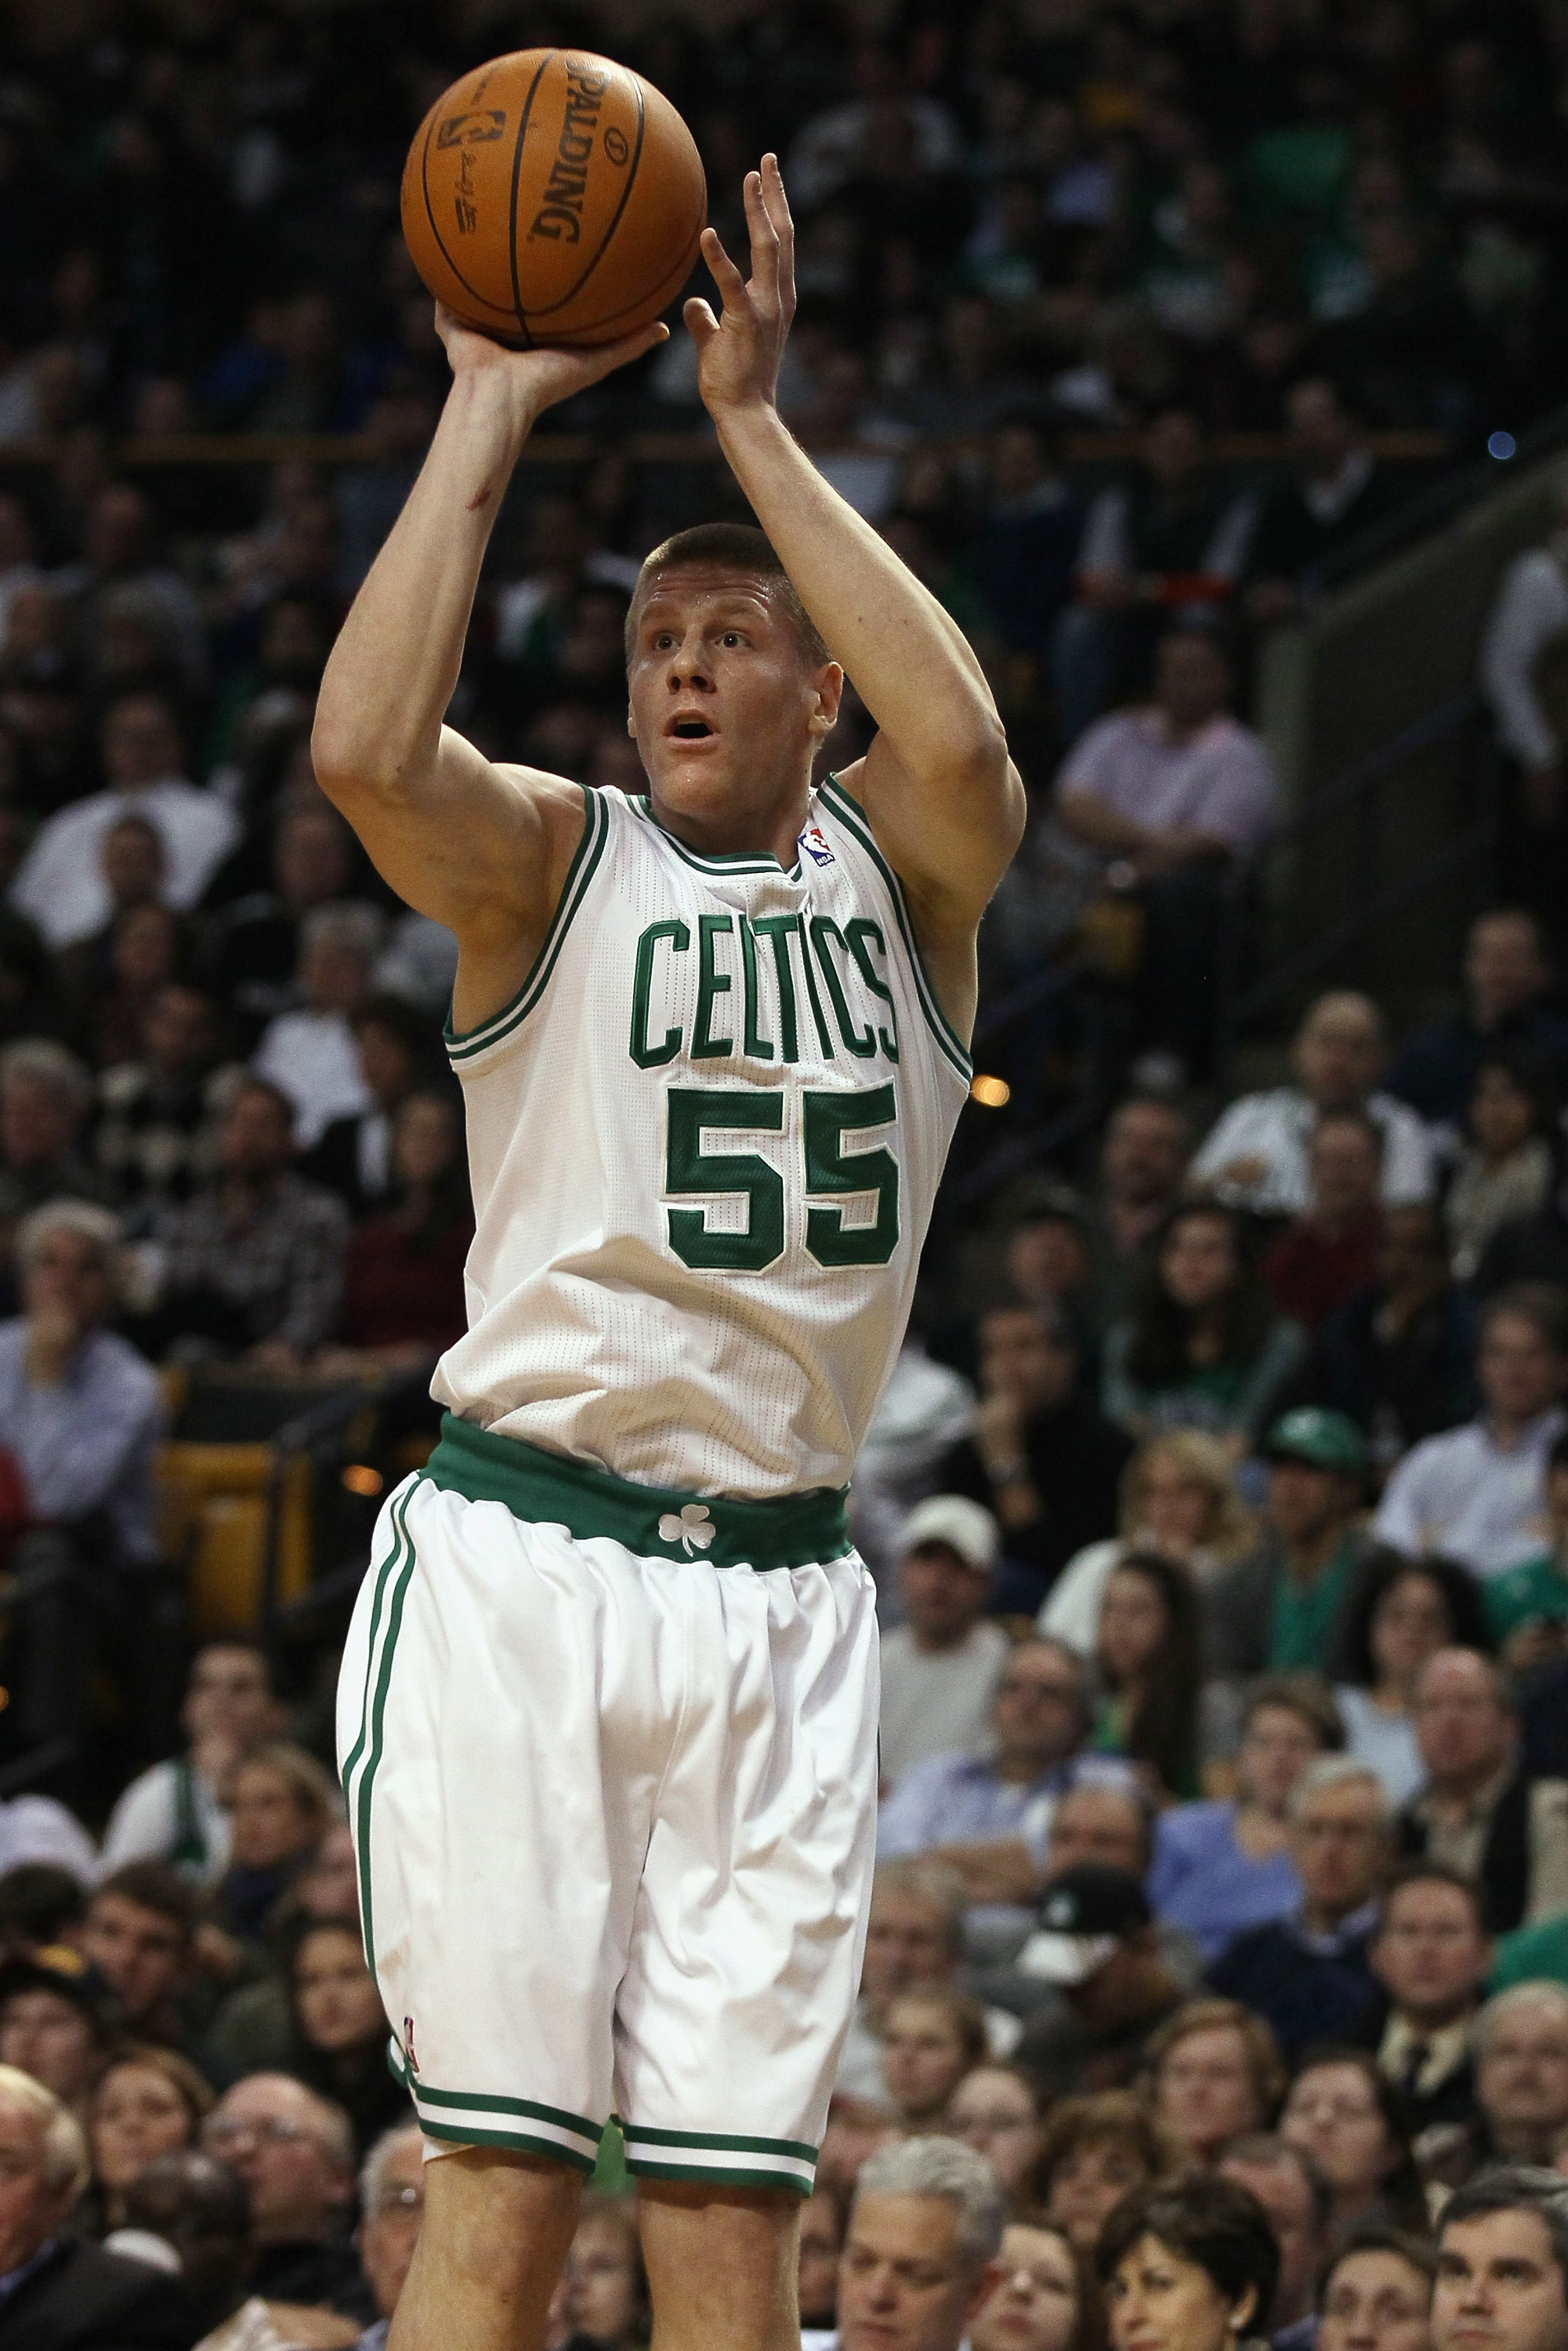 BOSTON, MA - DECEMBER 16:  Luke Harangody #55  of the Boston Celtics takes a shot in the first half against the Atlanta Hawks on December 16, 2010 at the TD Garden in Boston, Massachusetts. NOTE TO USER: User expressly acknowledges and agrees that, by dow